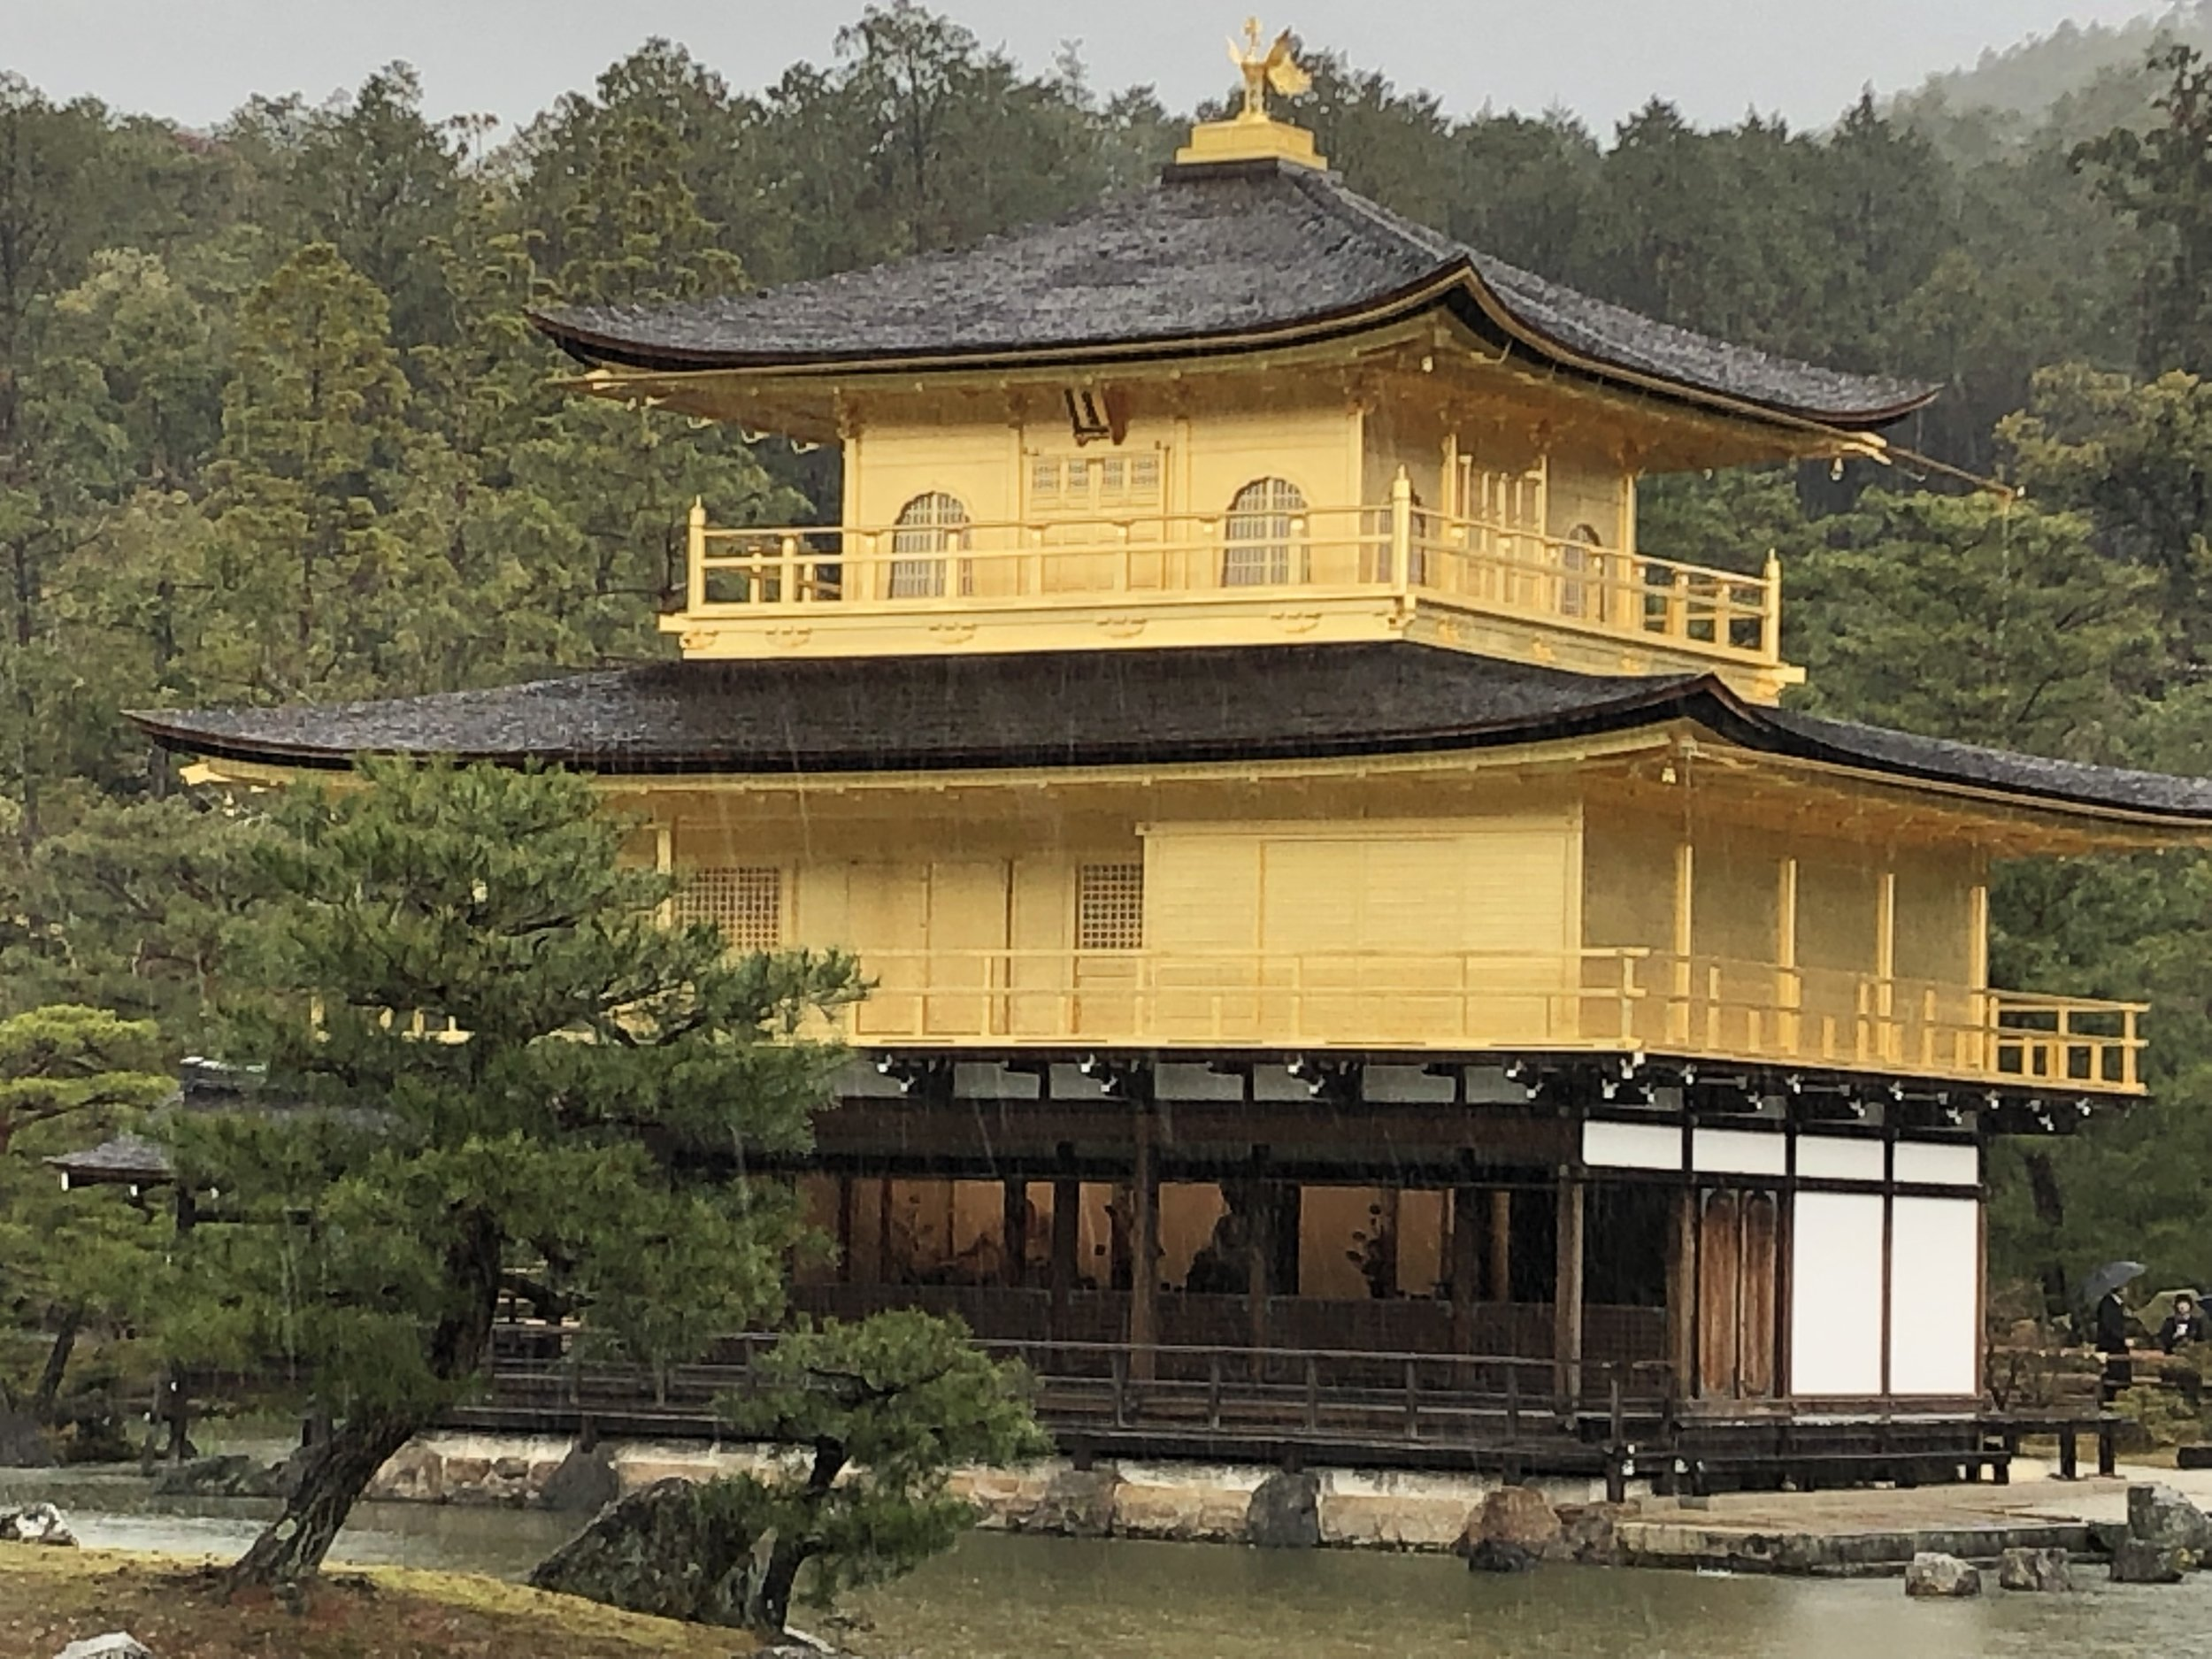 The iconic Golden Temple (Kinkaku-ji) just outside Kyoto. Sadly, no one is allowed inside the building but it is still worth the trip.